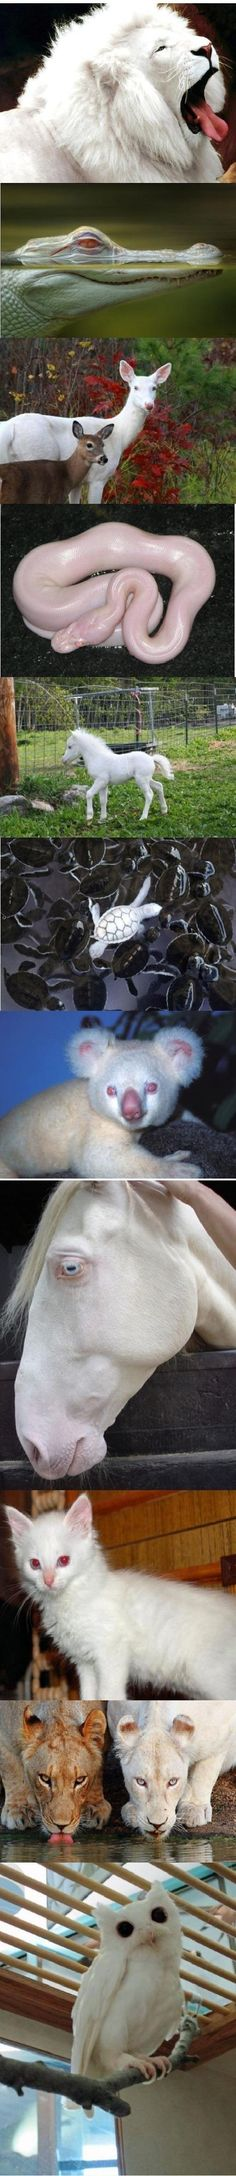 Albino aminlas...they don't look real